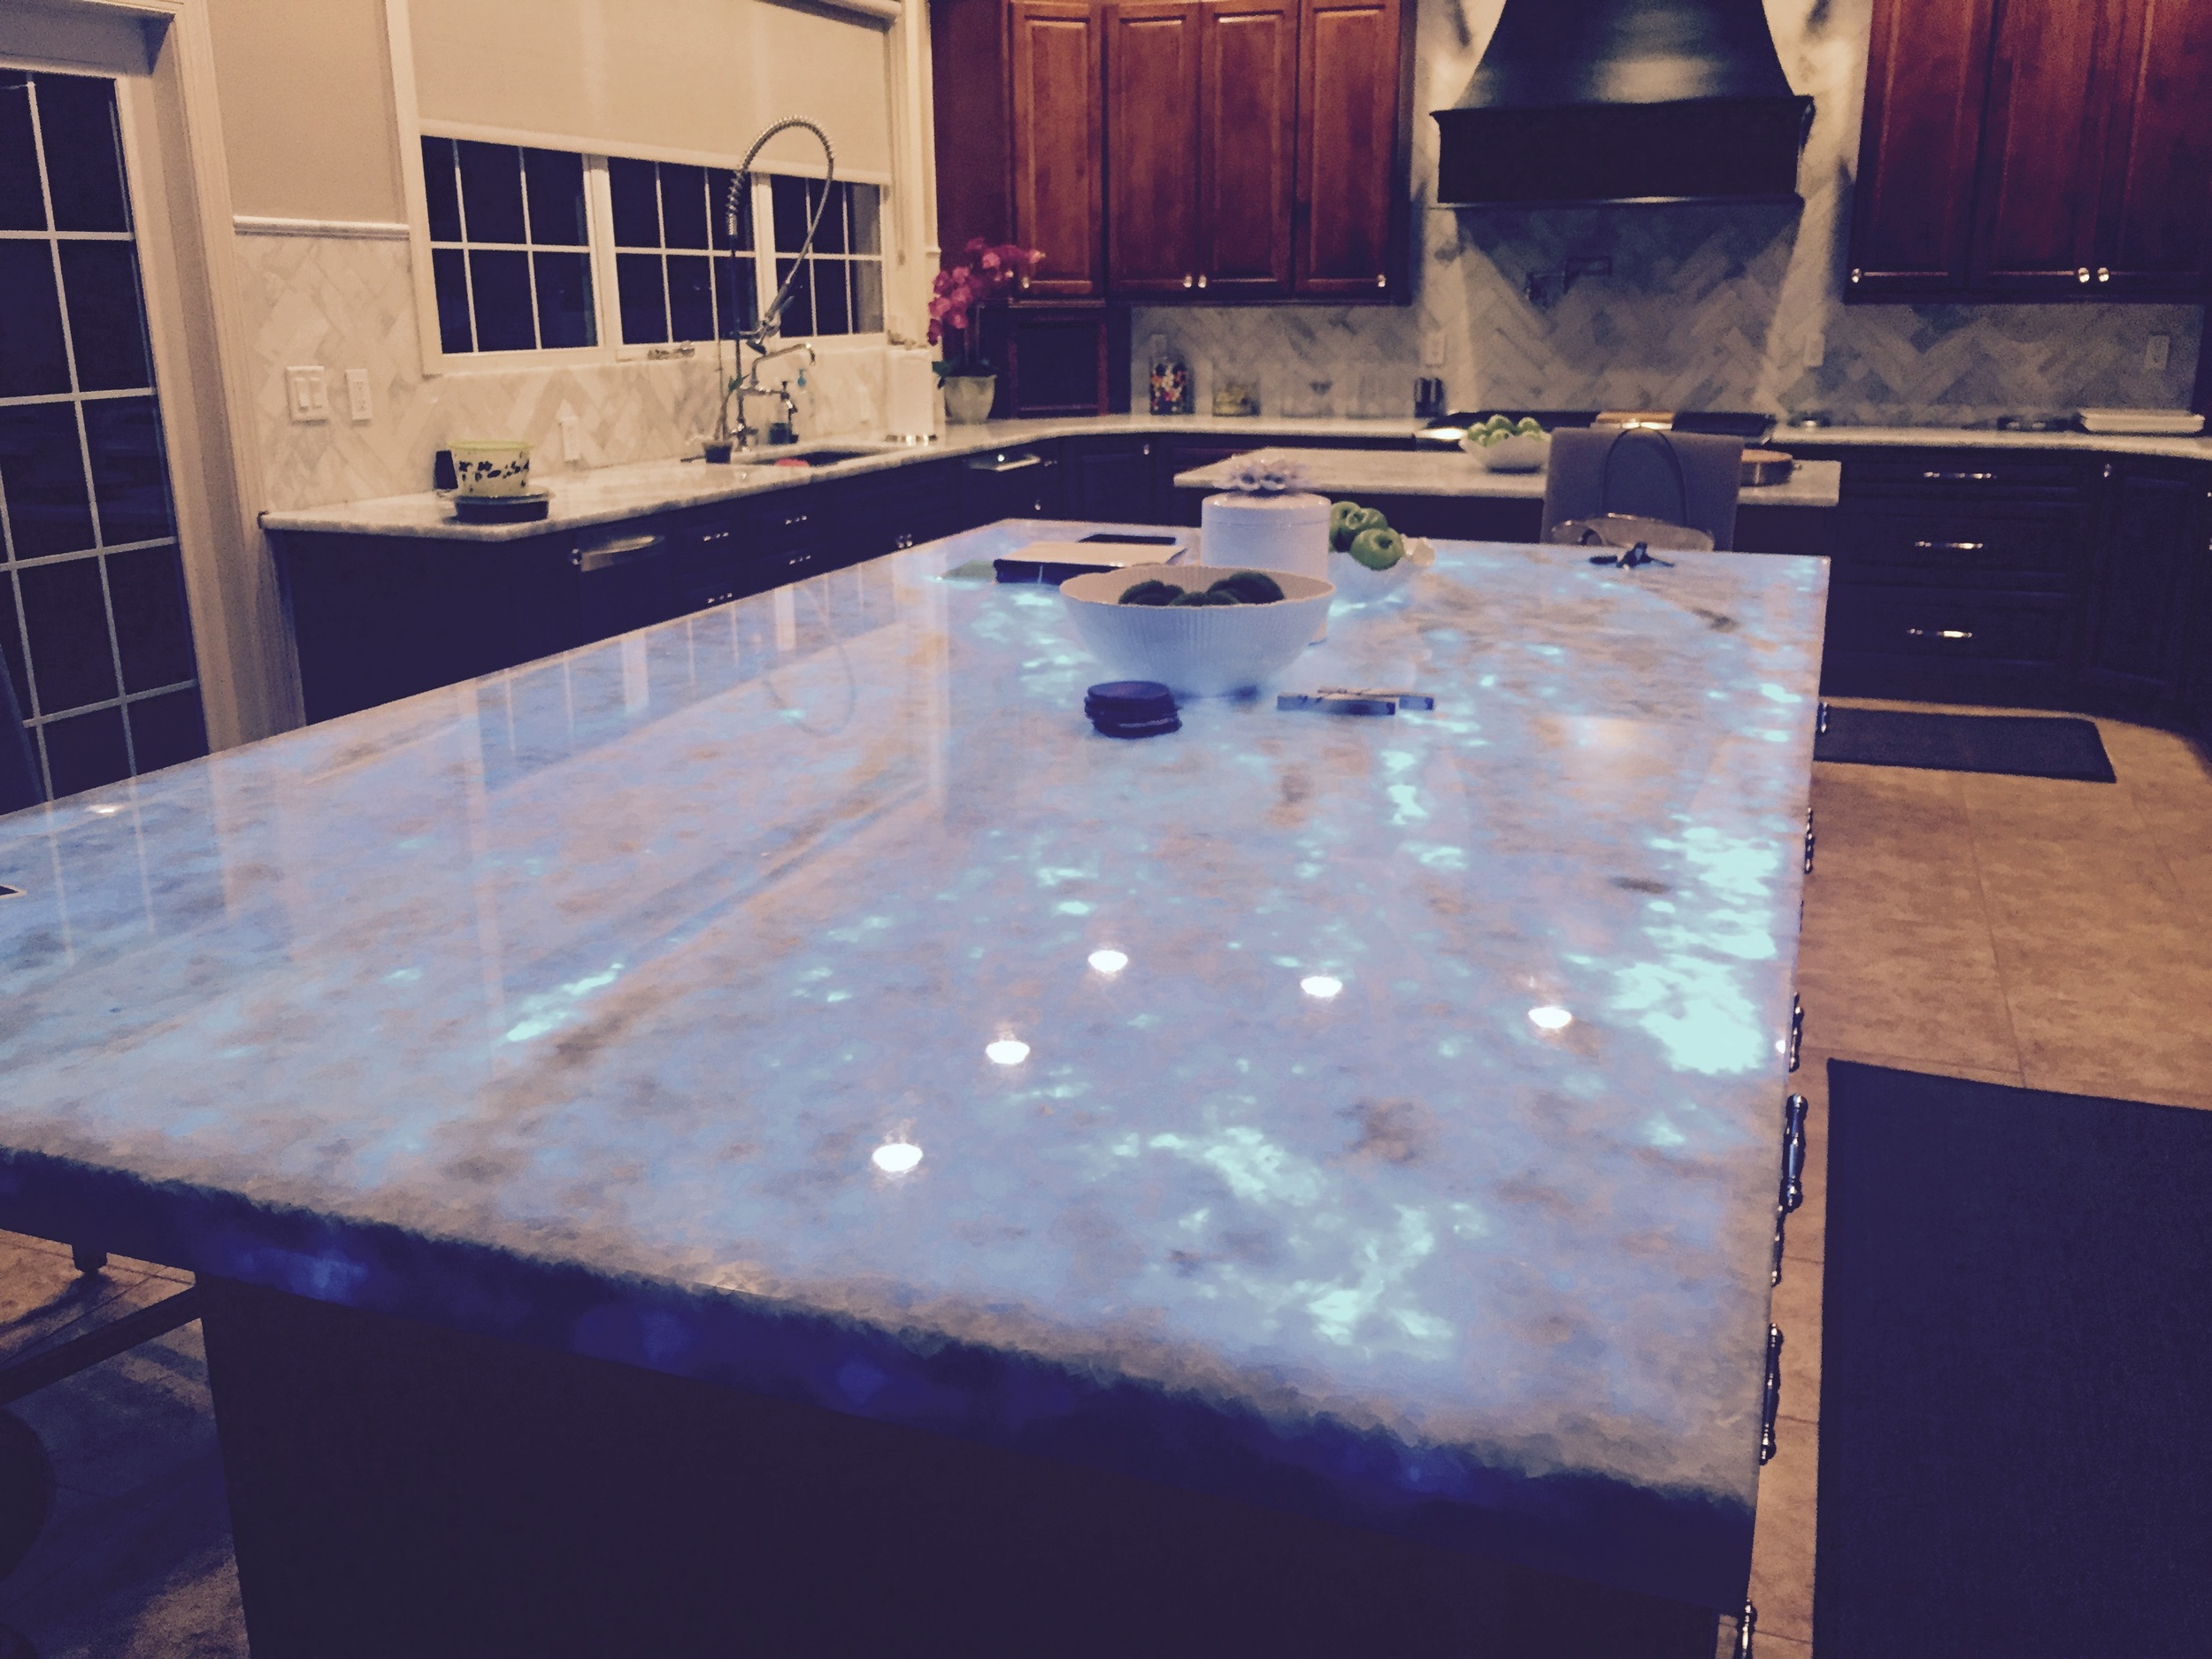 LED Backlit Kitchen Island Countertop